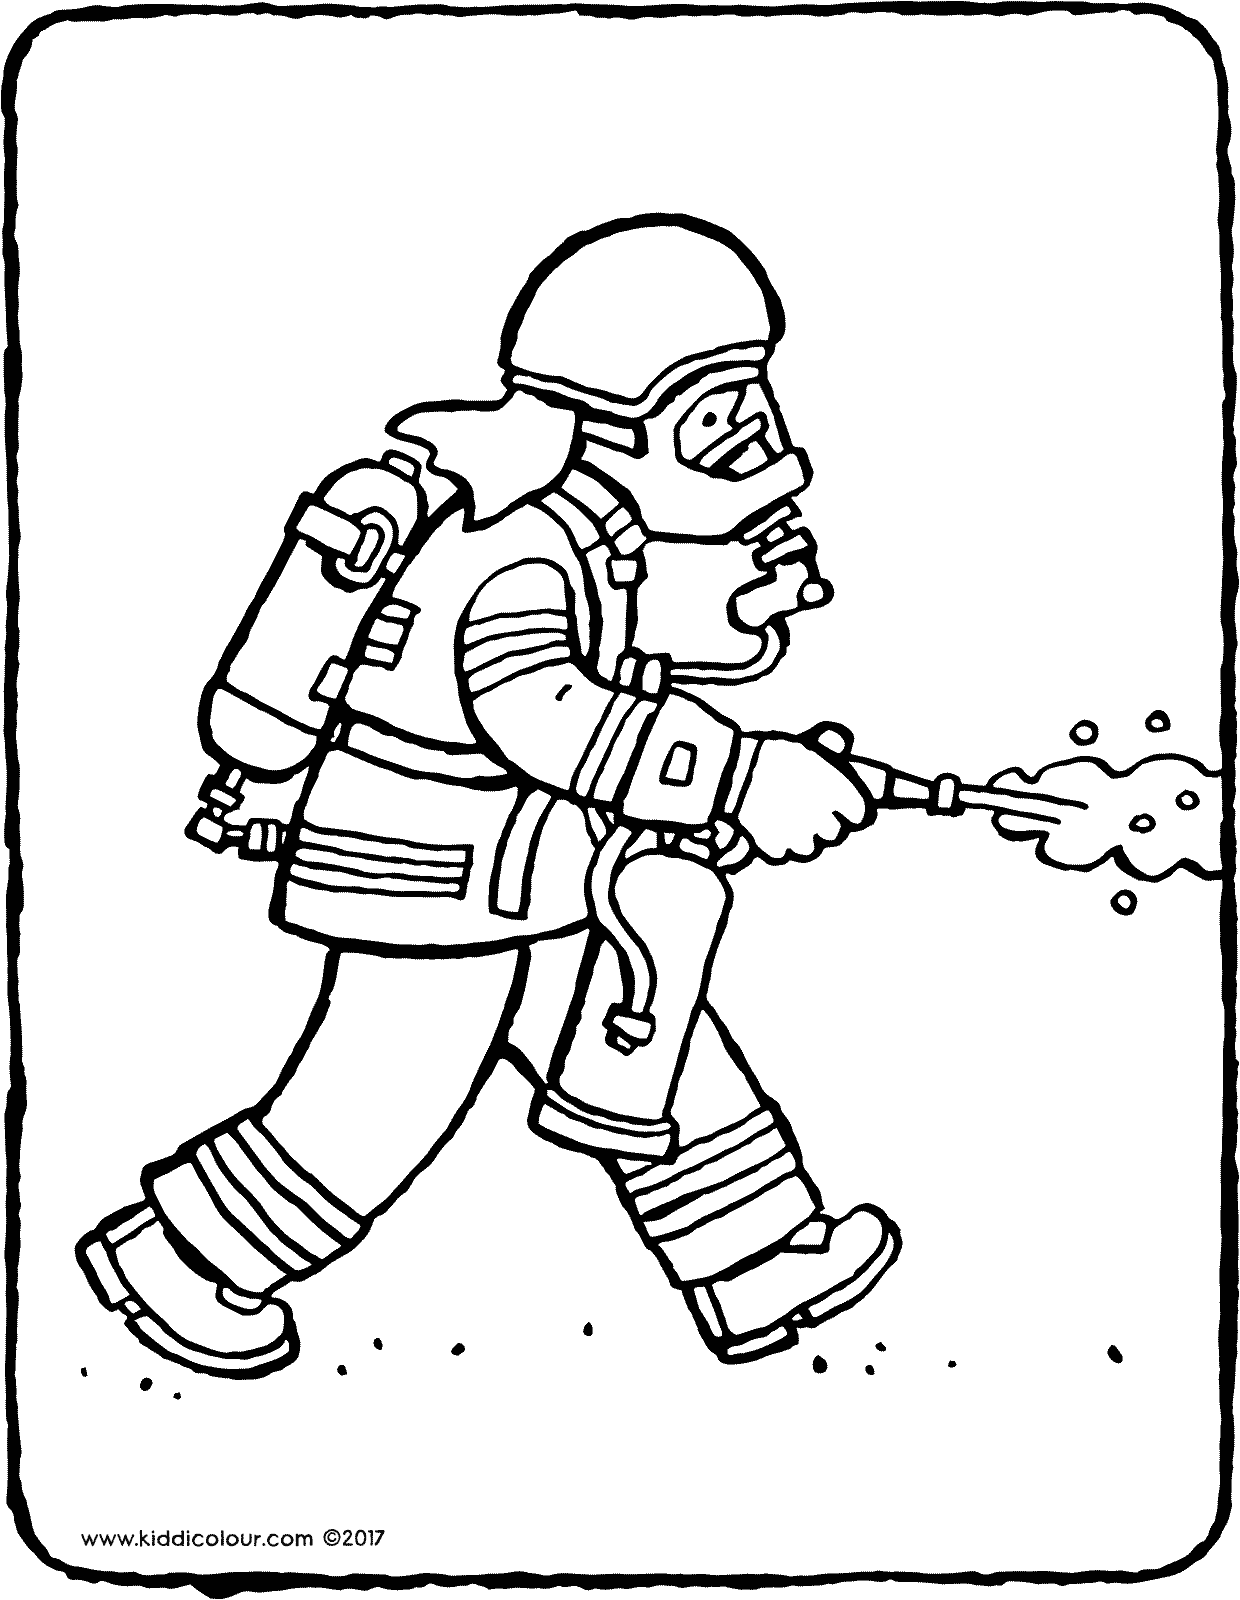 firefighter colouring page drawing picture 01V